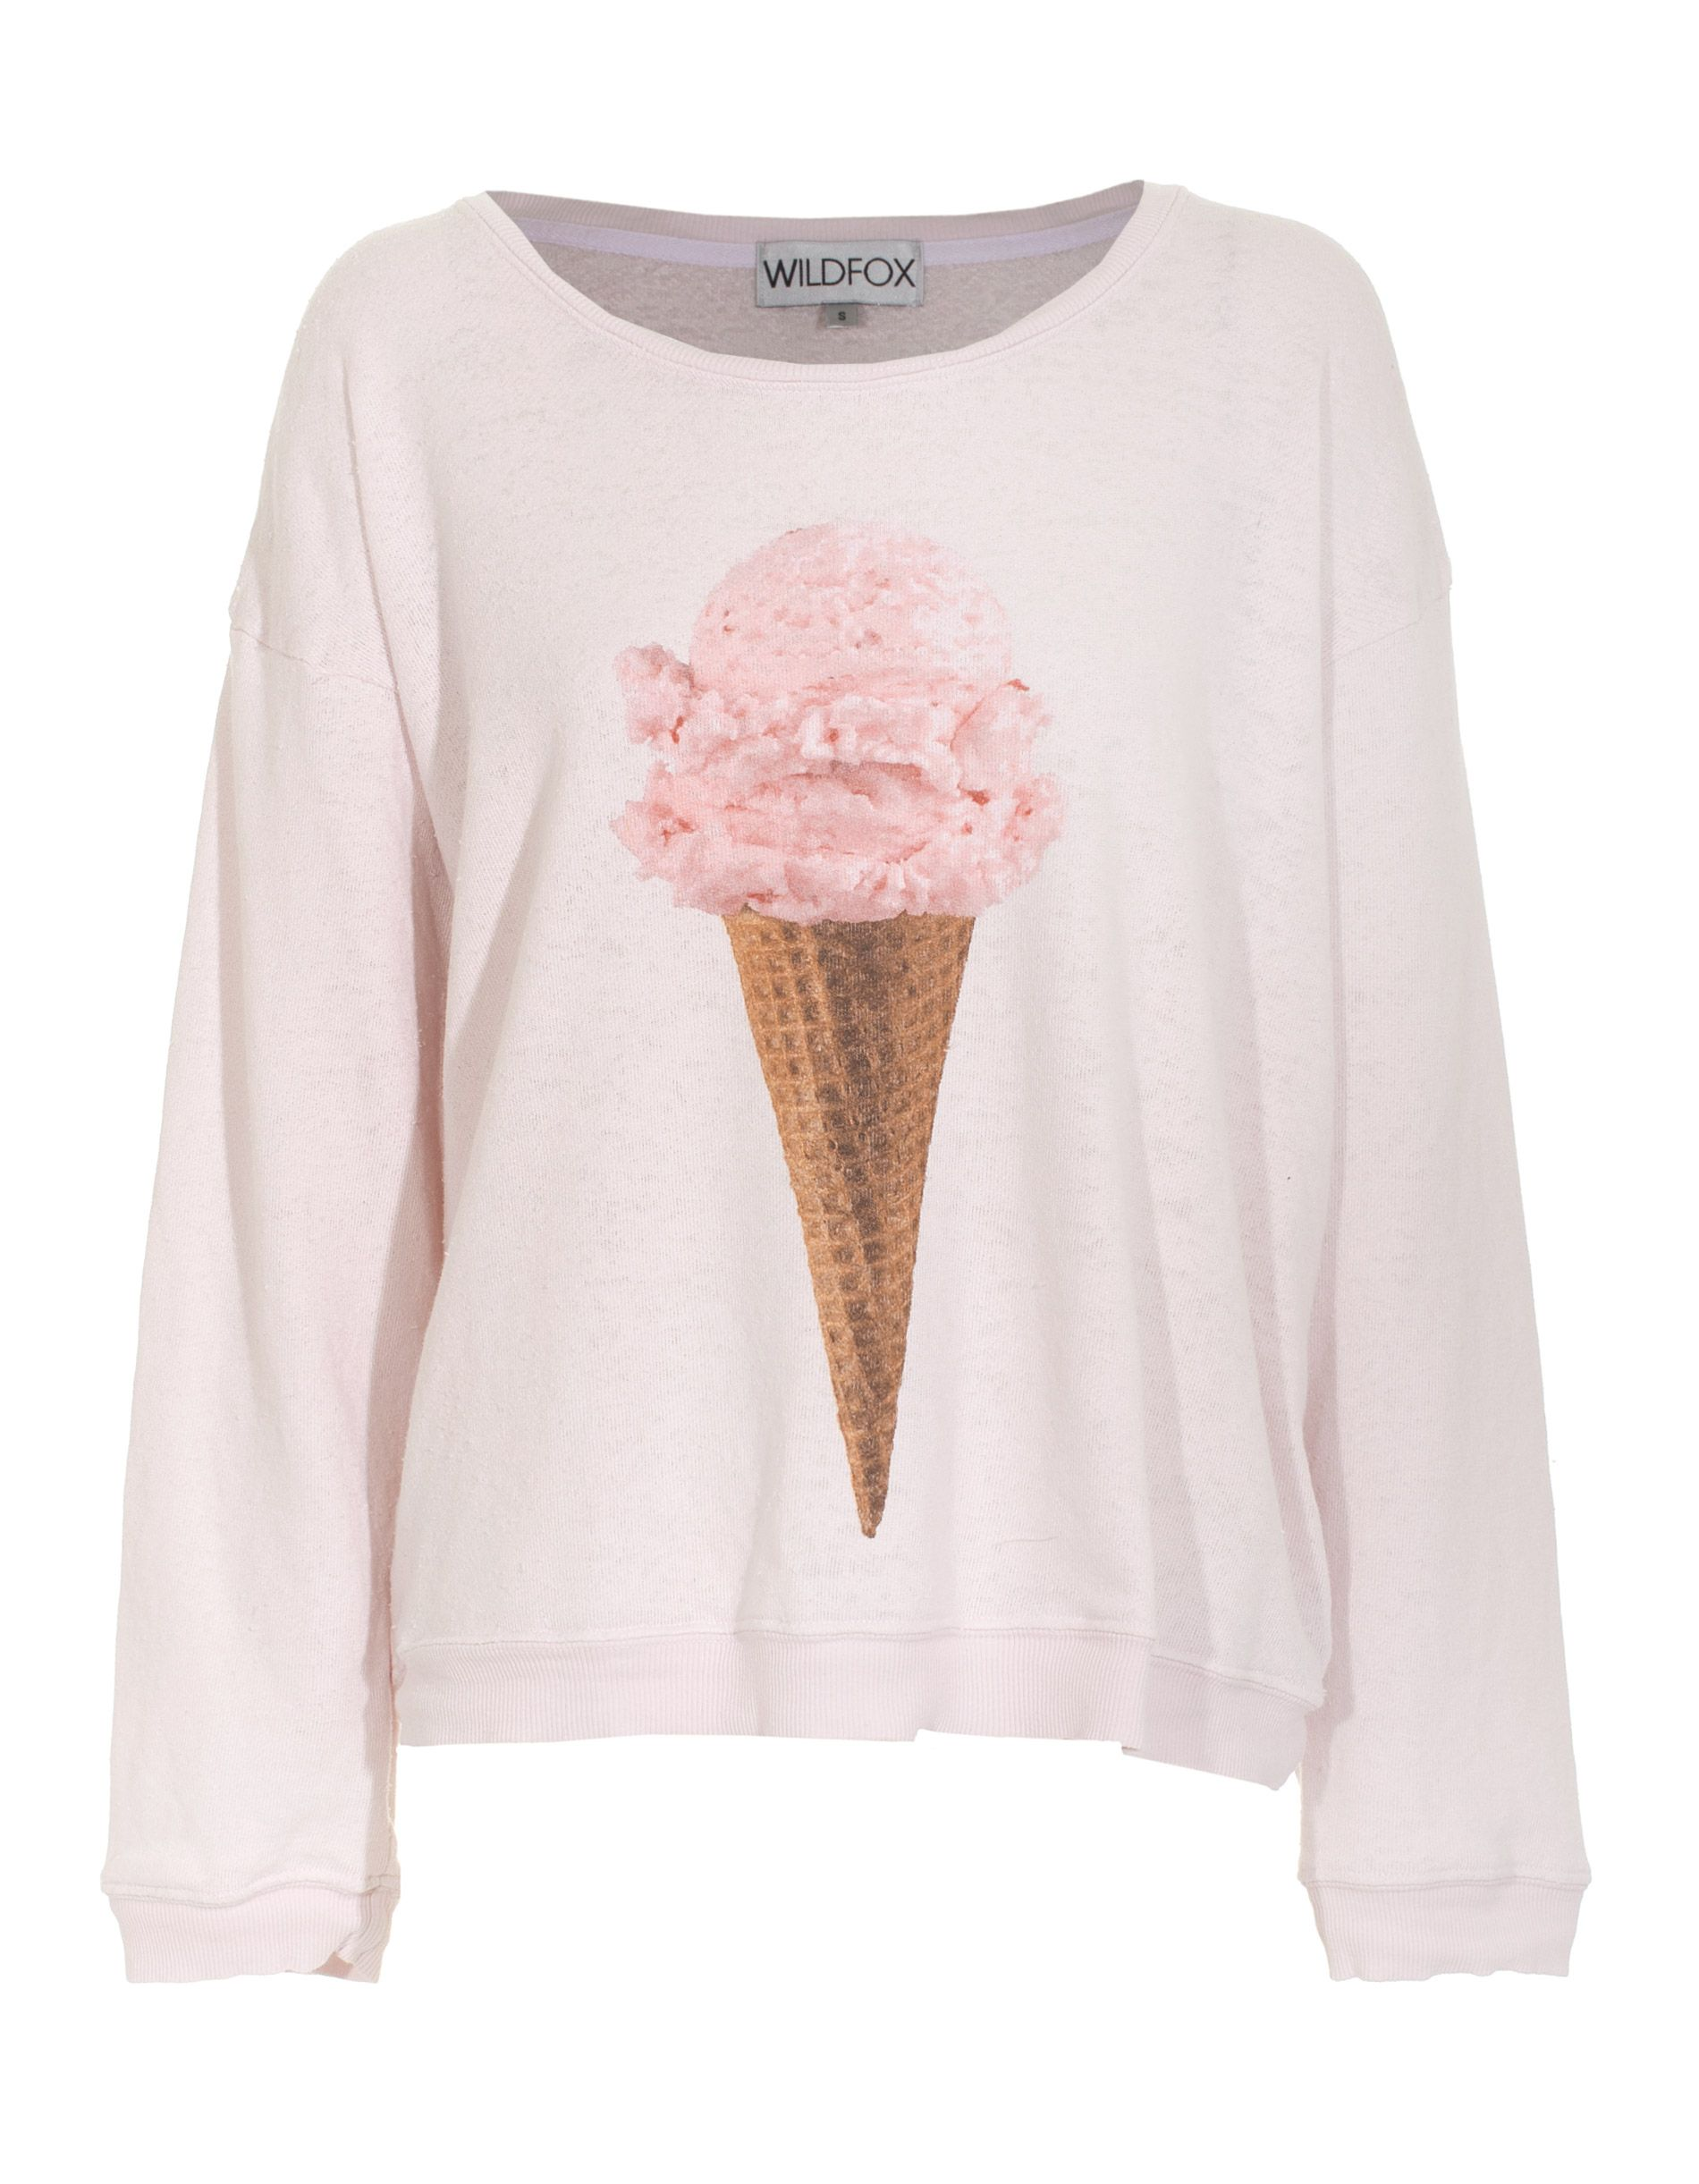 Wildfox ice cream sweater #kawaii I couldn't wear it, but it's so ...